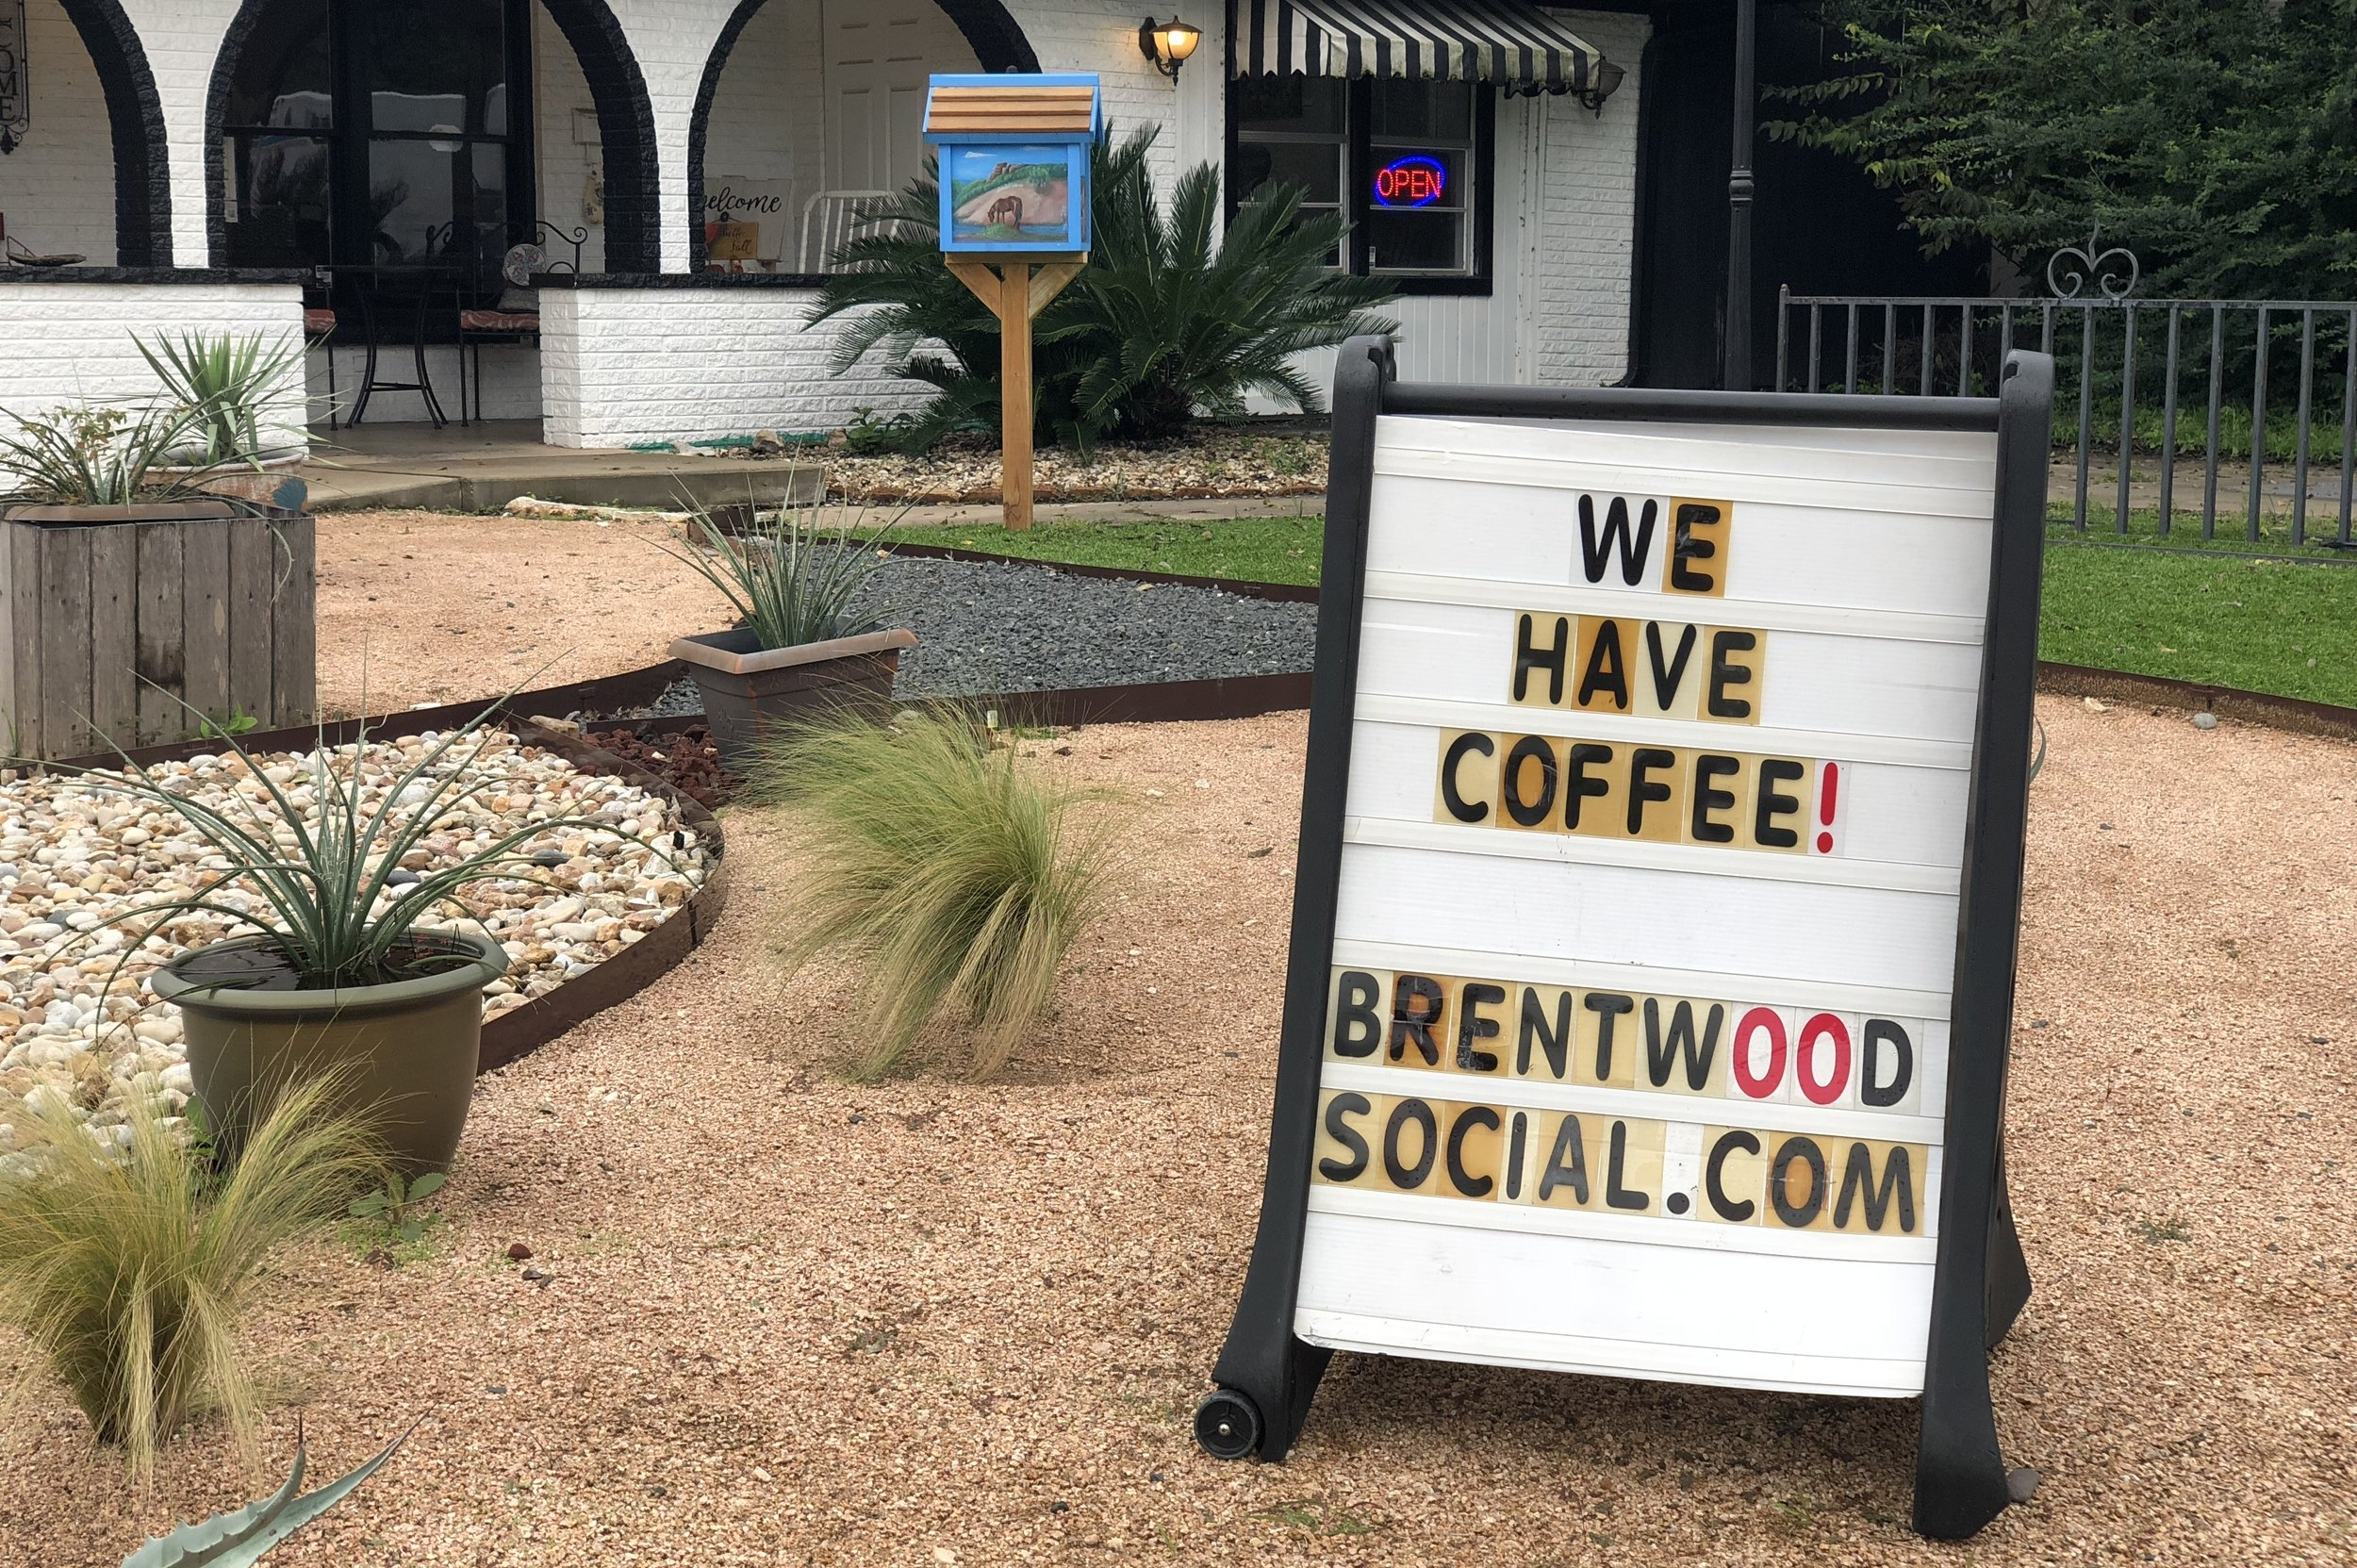 Brentwood Social House has coffee!